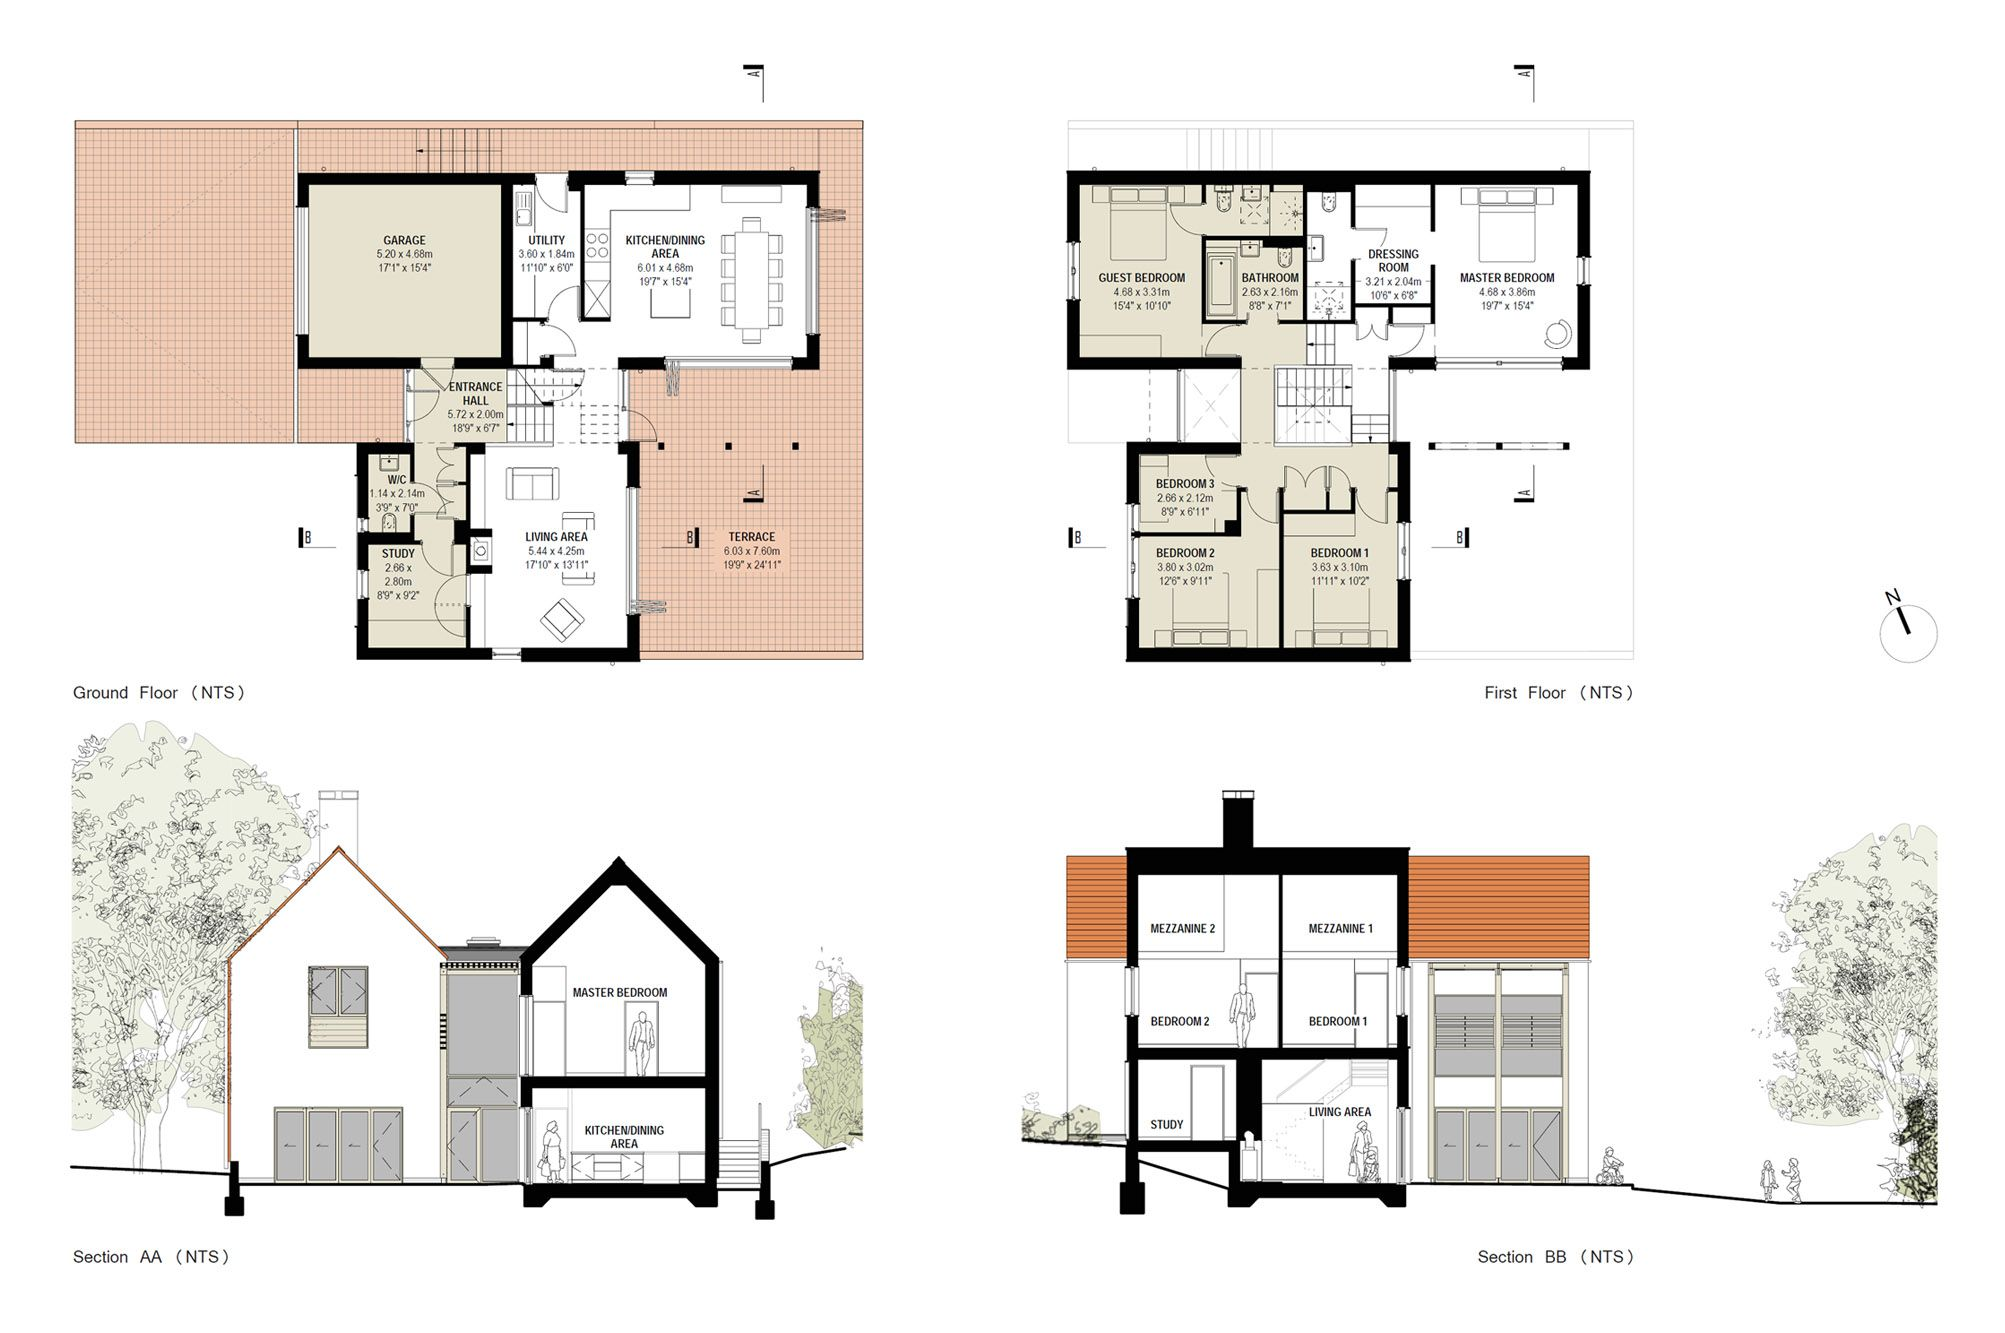 House Plans That Are GreenPlansHome Plans Ideas Picture - Green home designs floor plans